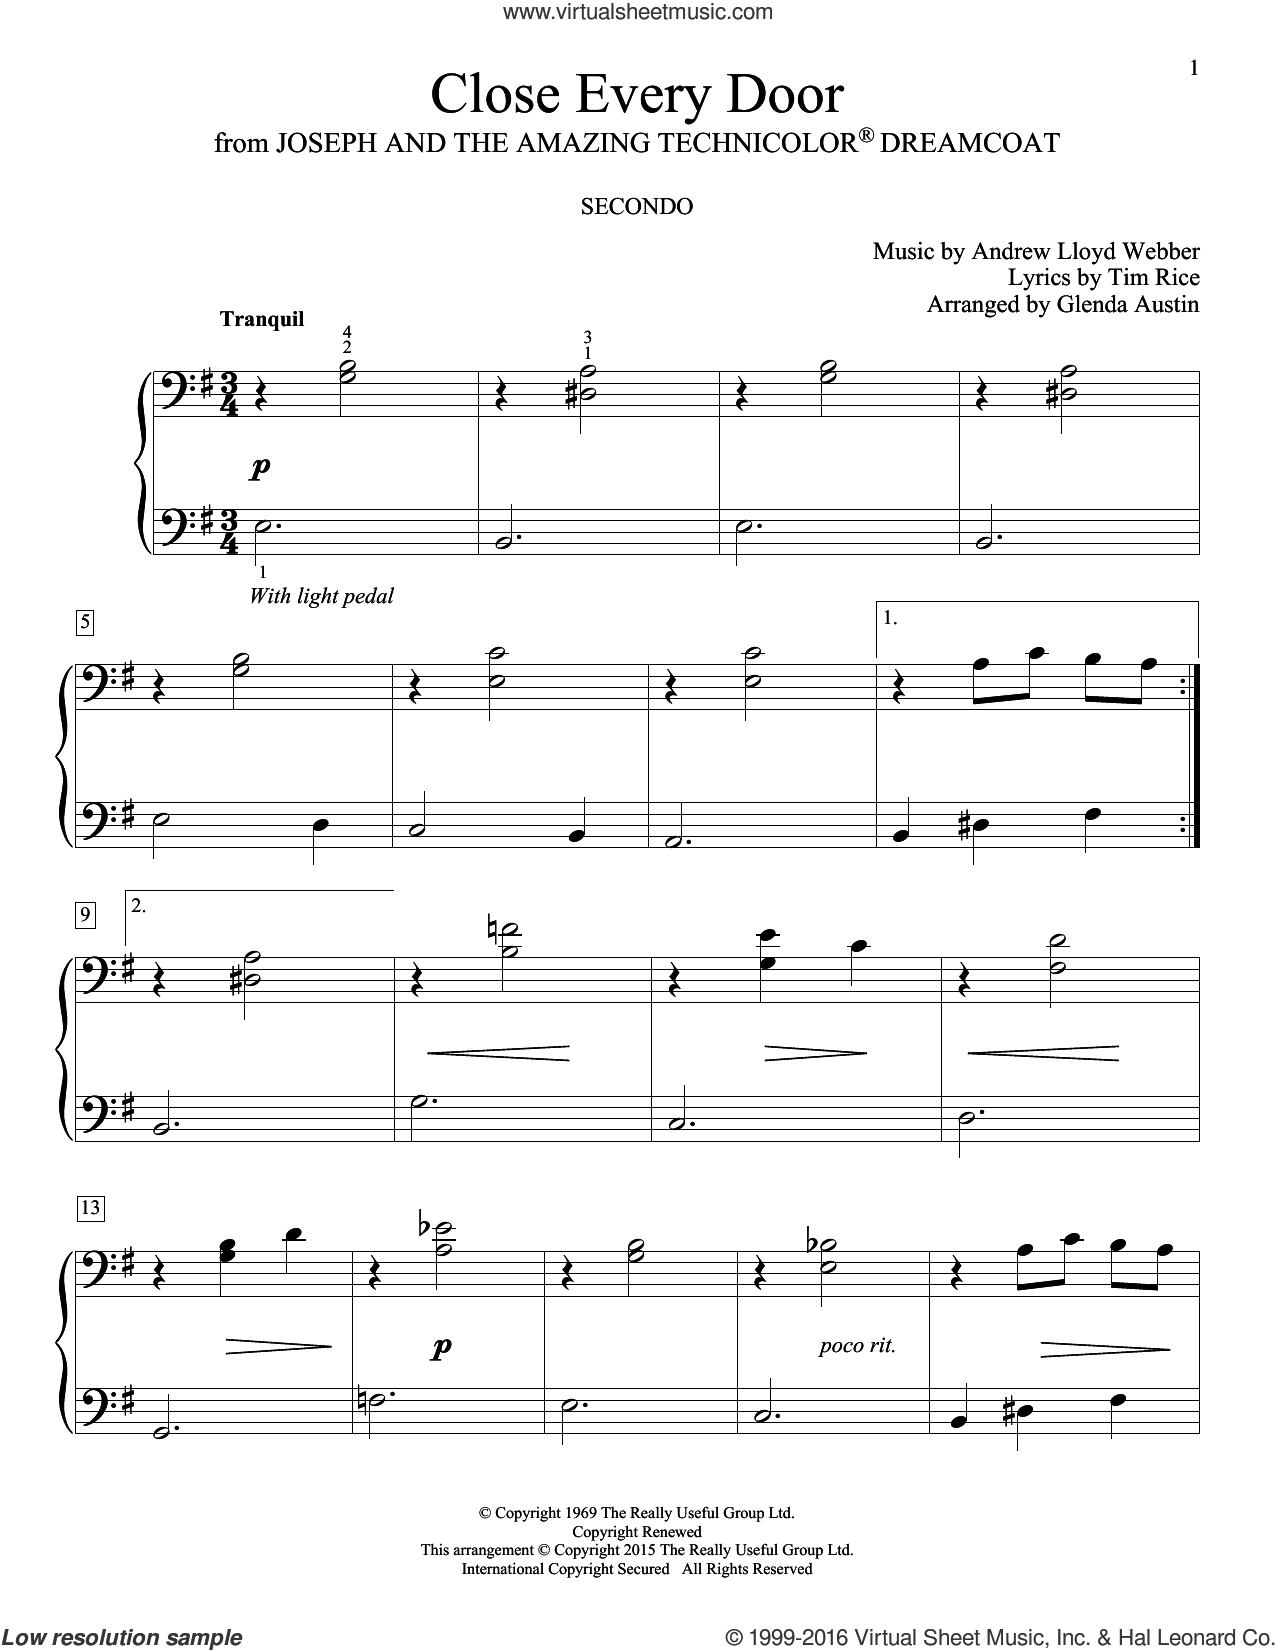 Close Every Door sheet music for piano four hands (duets) by Andrew Lloyd Webber, Glenda Austin, Carolyn Miller, Eric Baumgartner and Tim Rice, intermediate piano four hands. Score Image Preview.